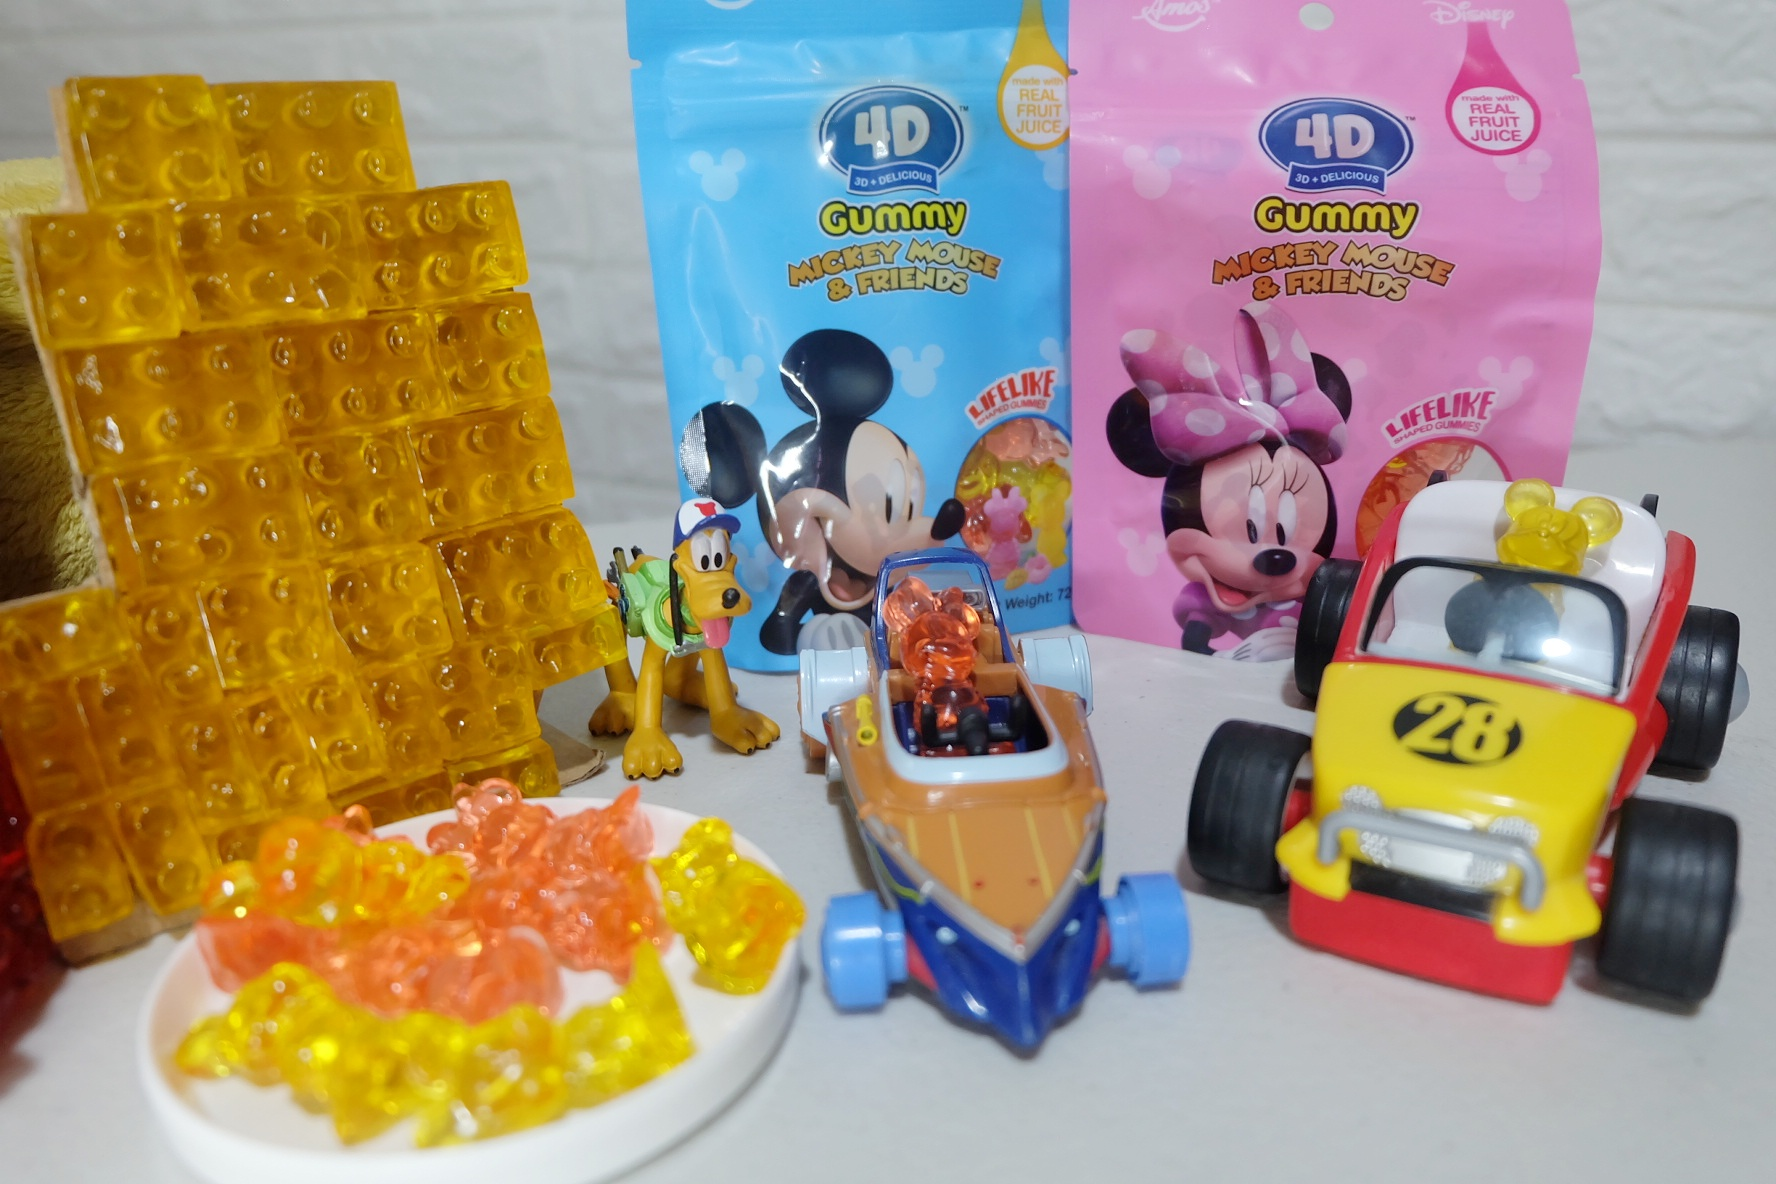 4ddisneygummies (4)